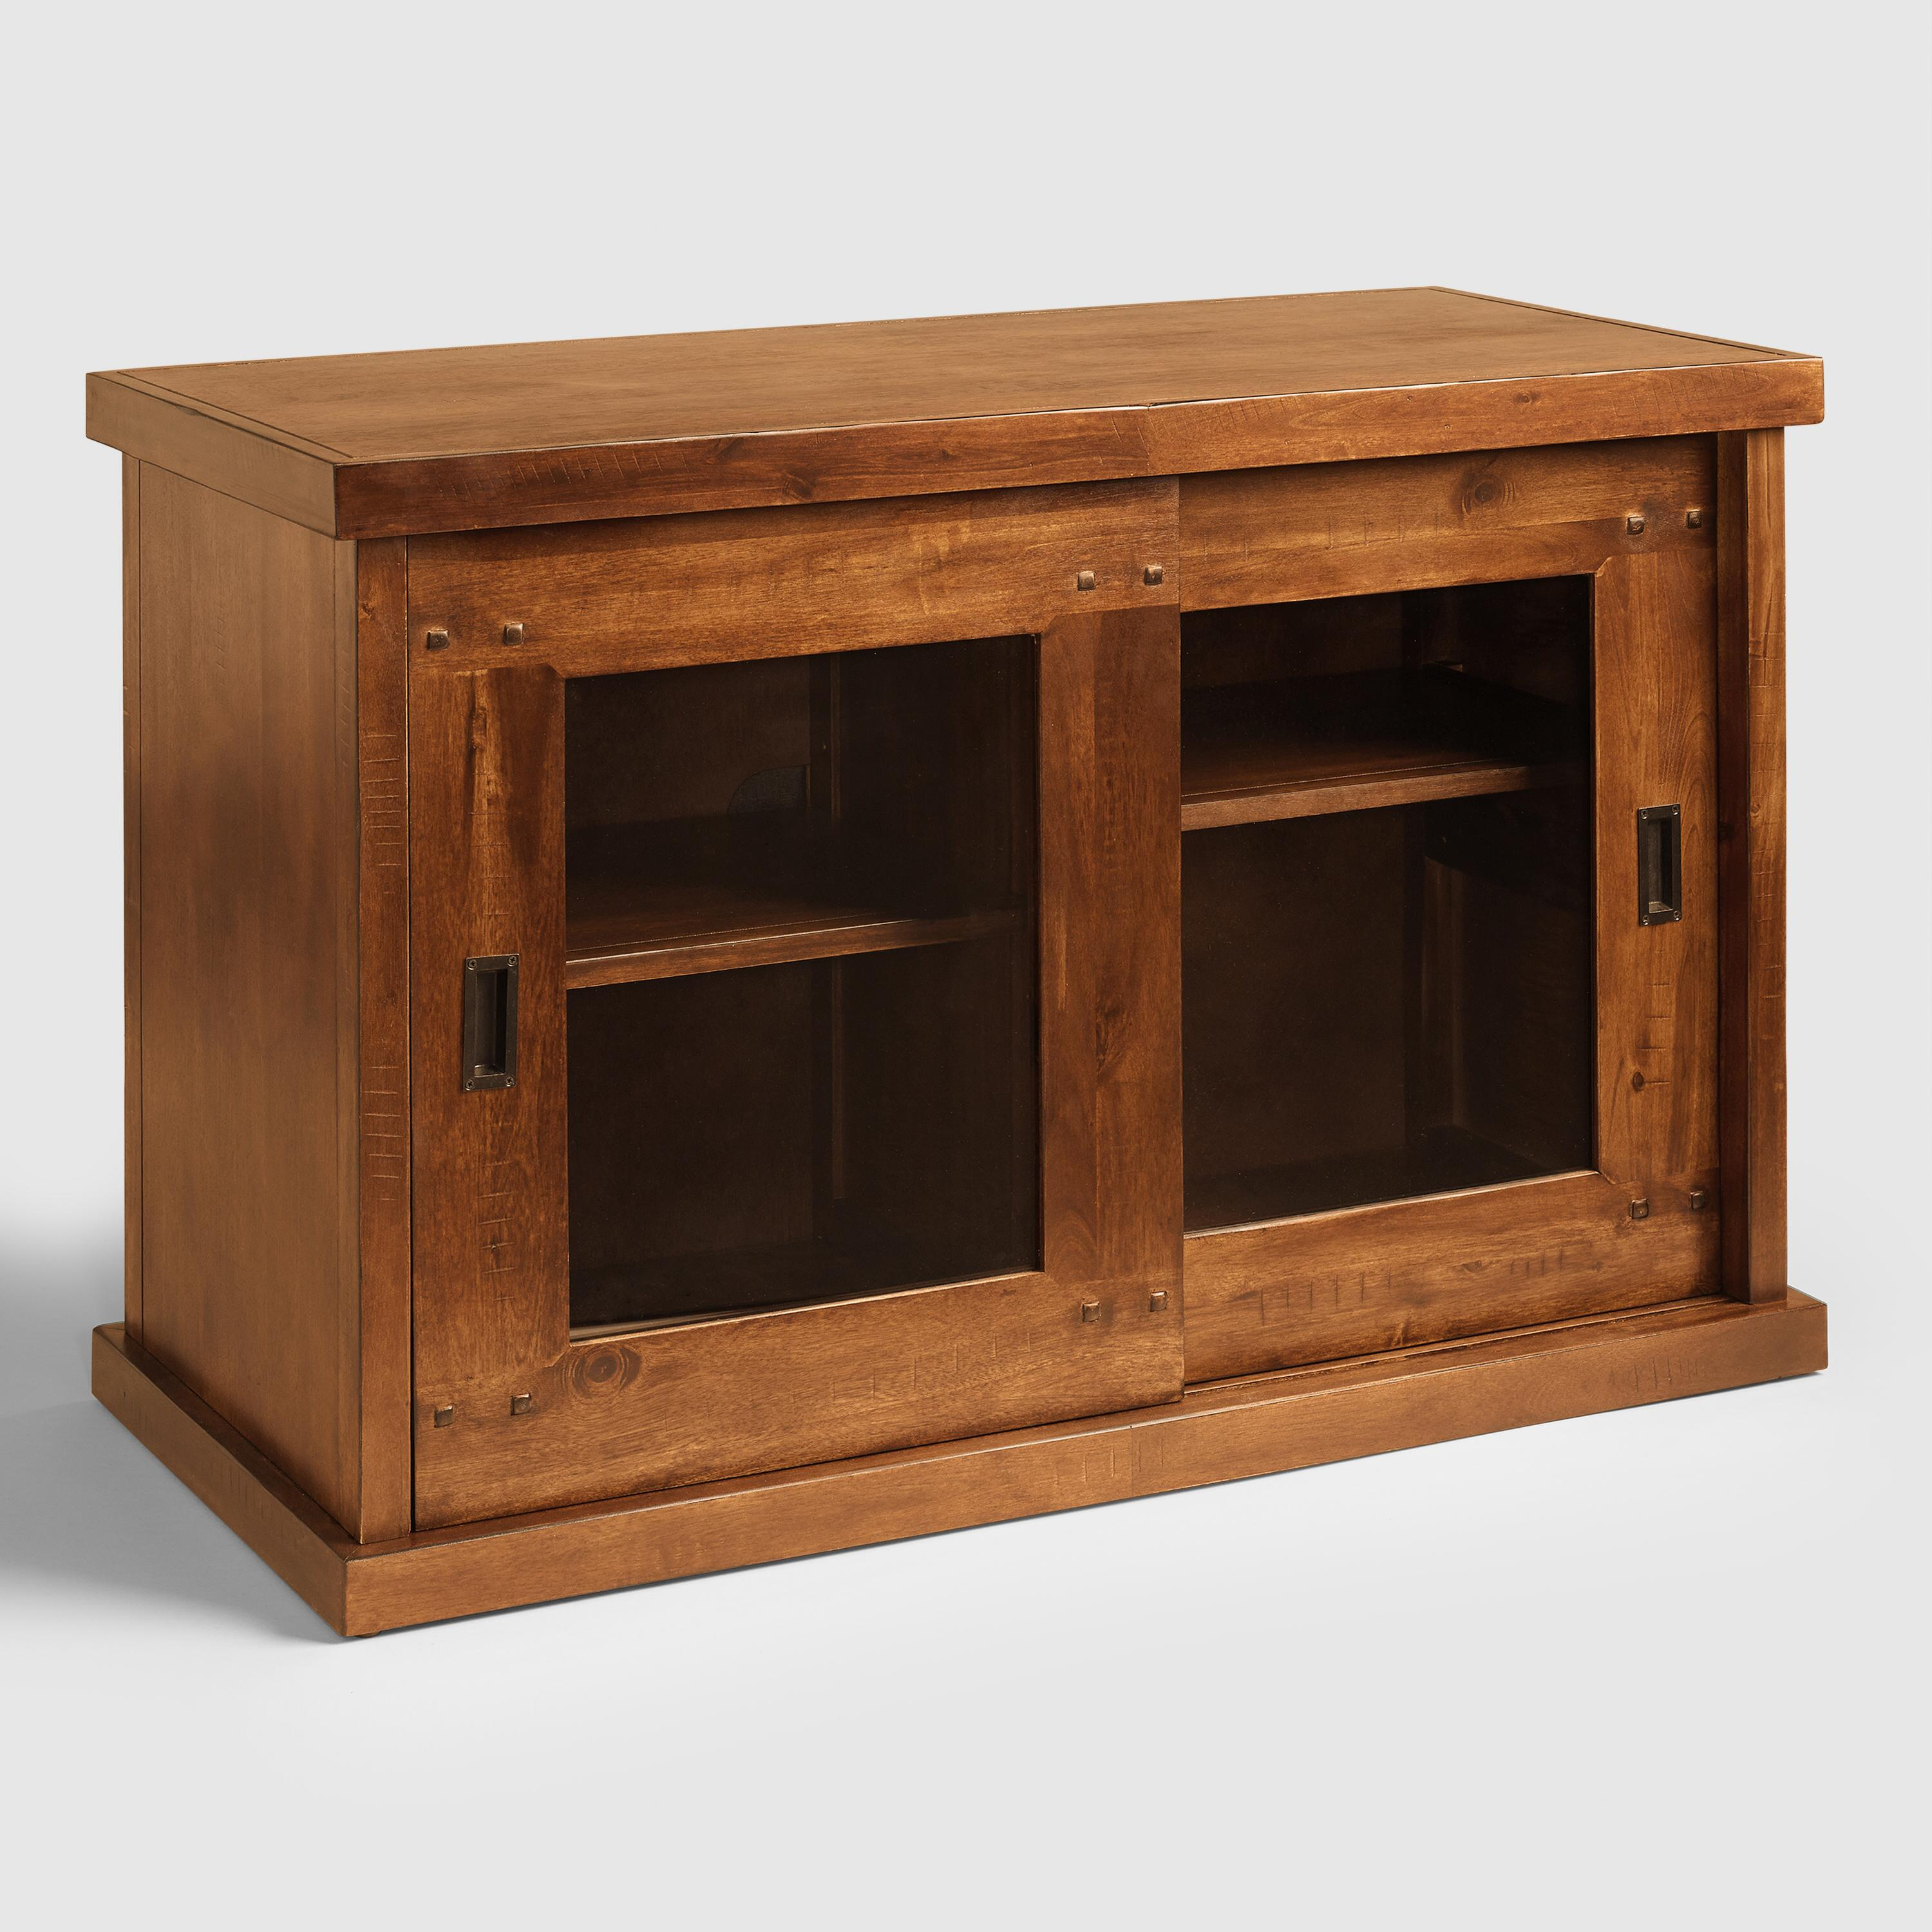 Living Room Display Cabinets ~ tboots.us